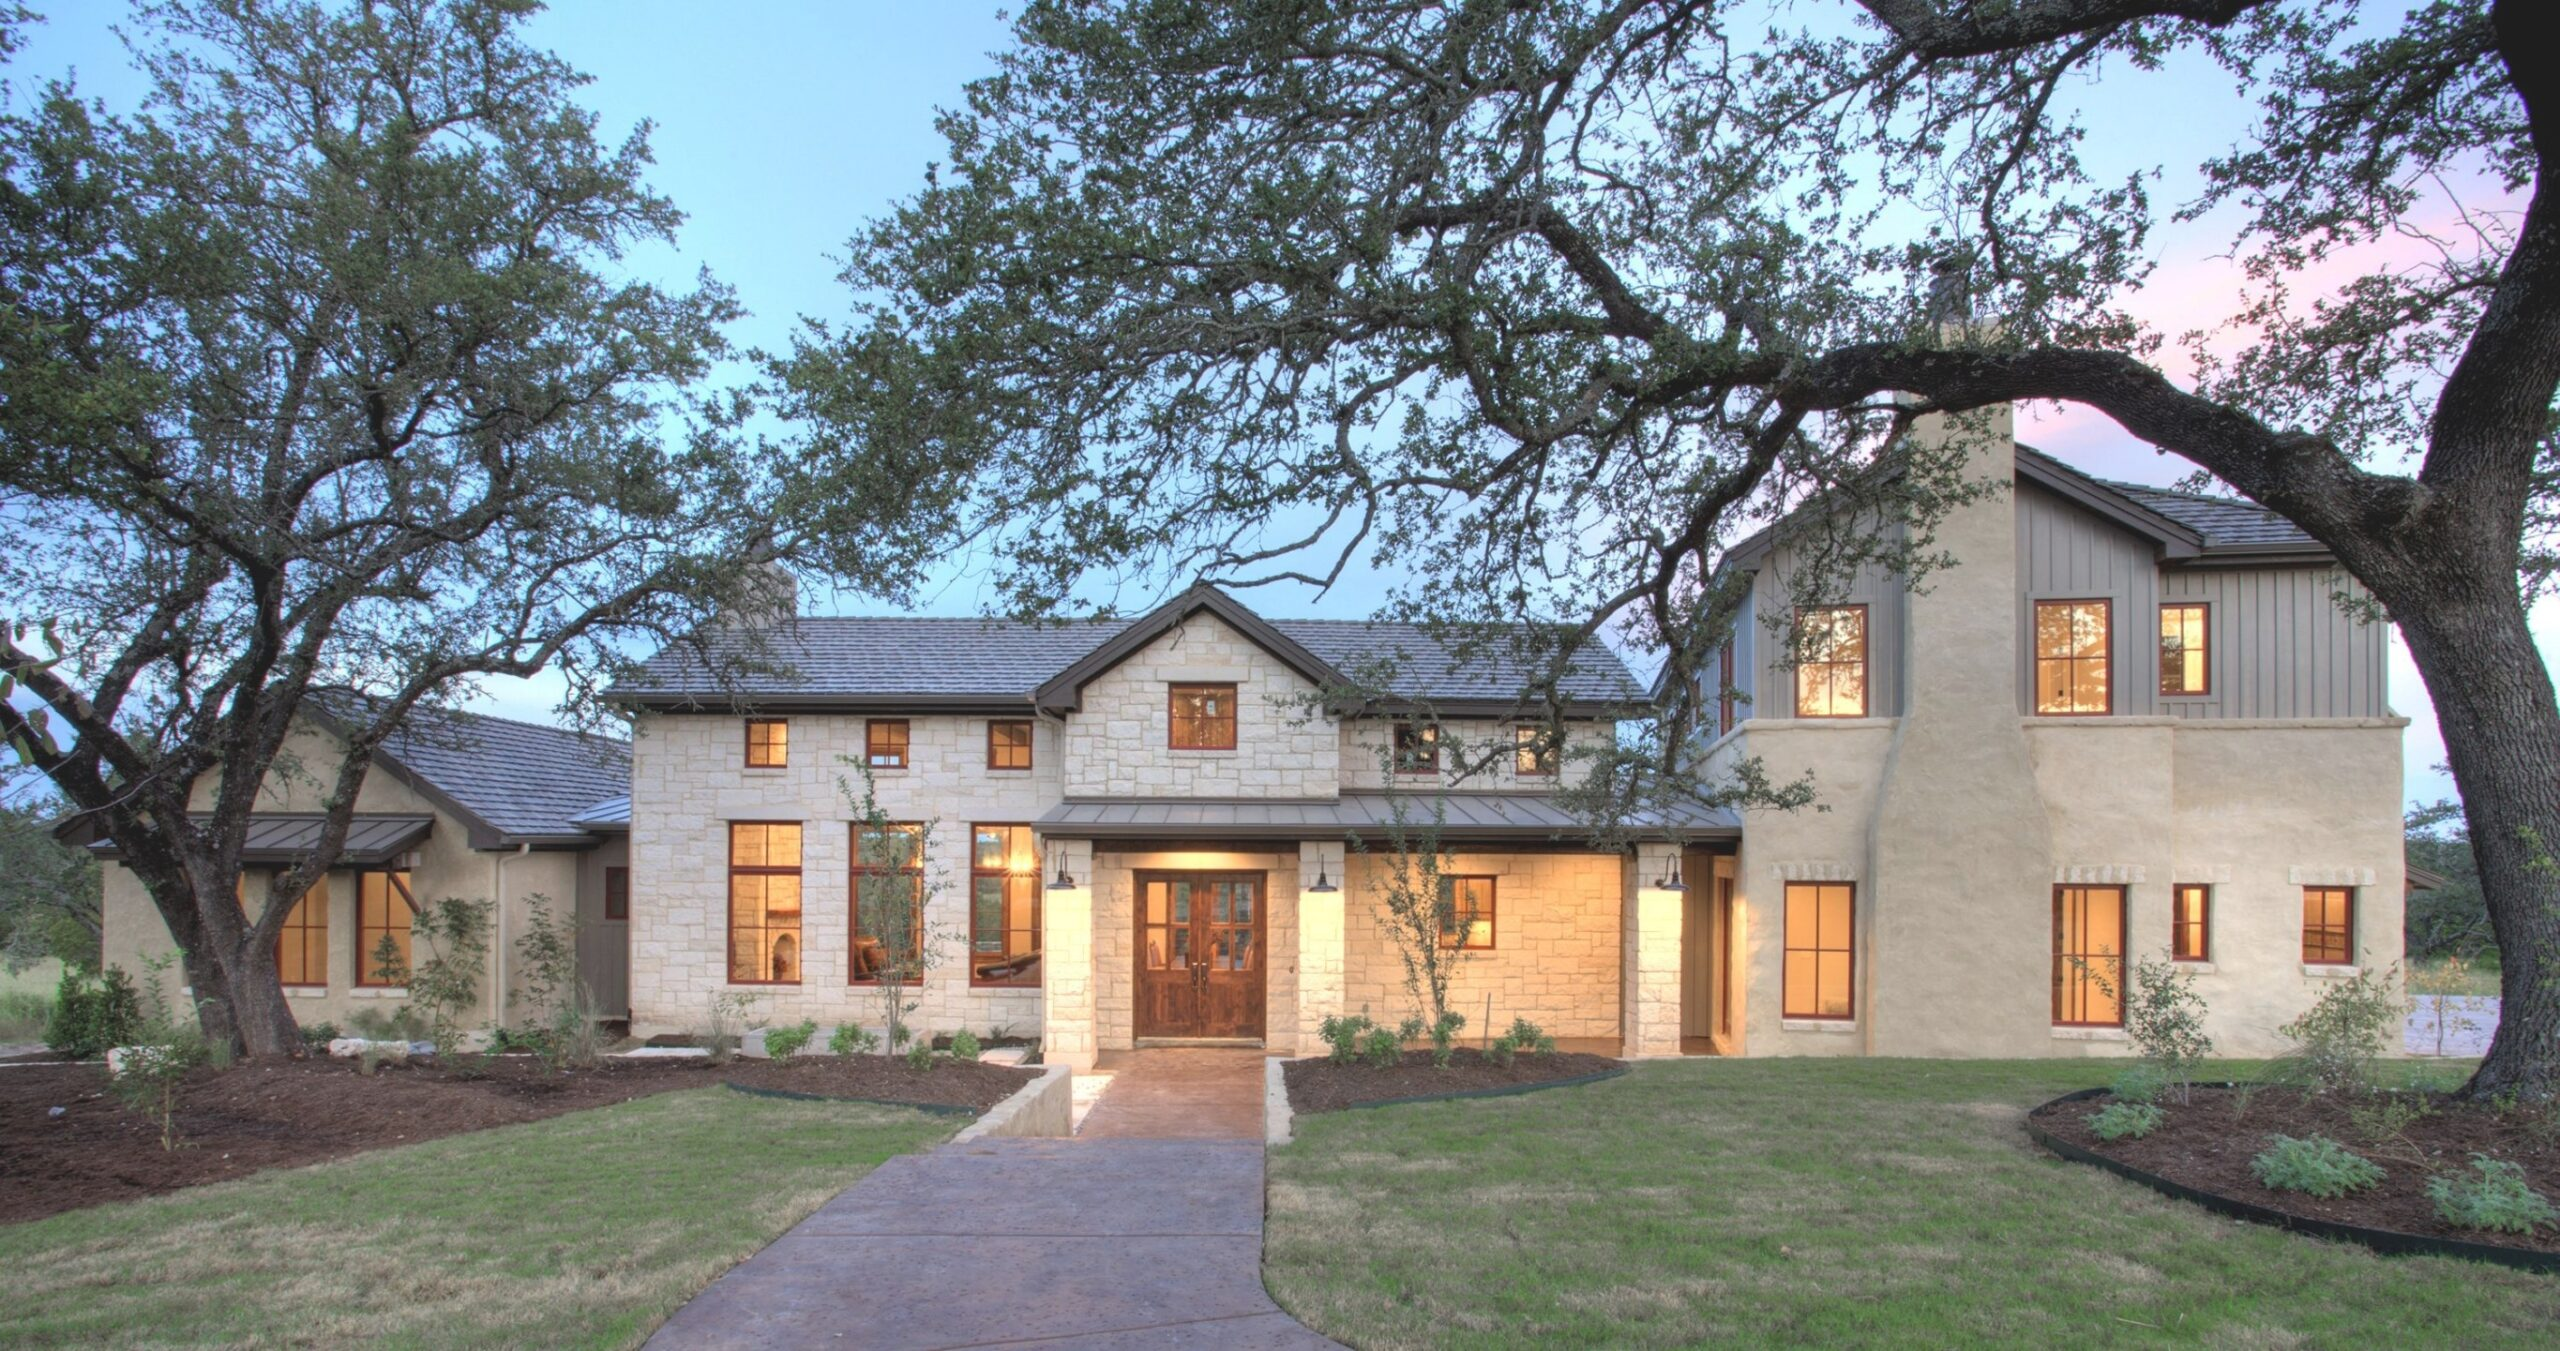 I'M On A Budget, So I Think I'Ll Chop Off That Wing To intended for Texas Hill Country Homes